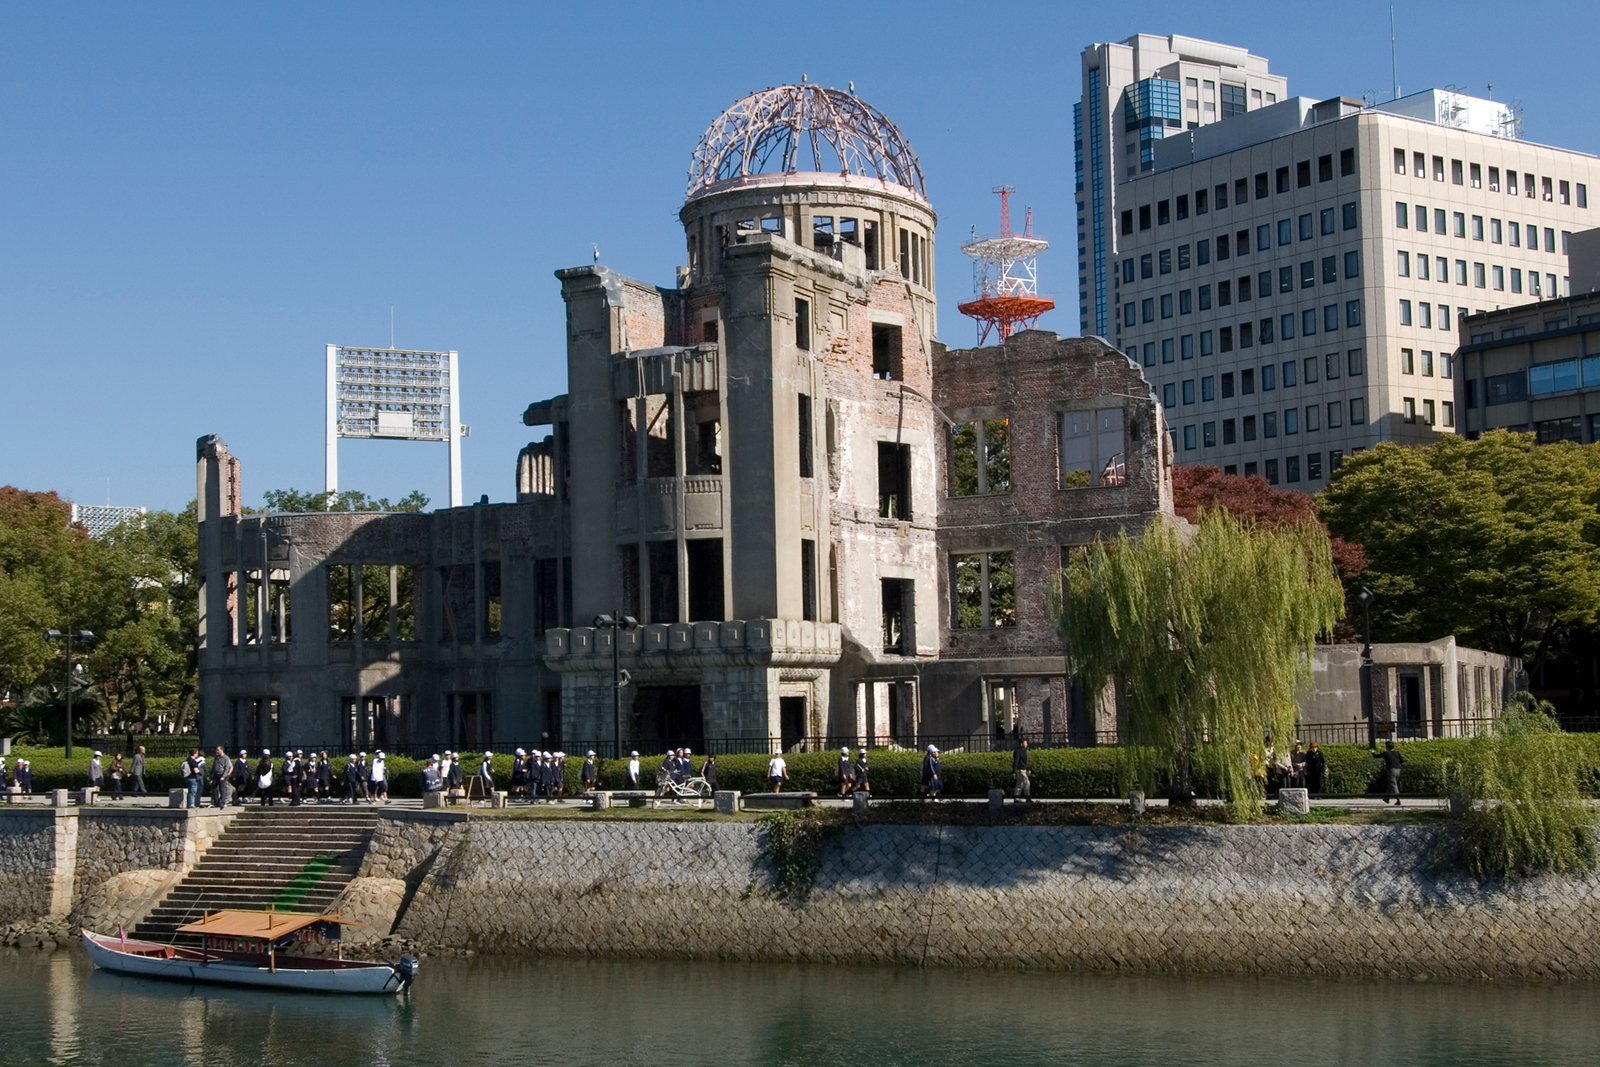 Hiroshima Peace Memorial (Genbaku Dome) - World Heritage Site